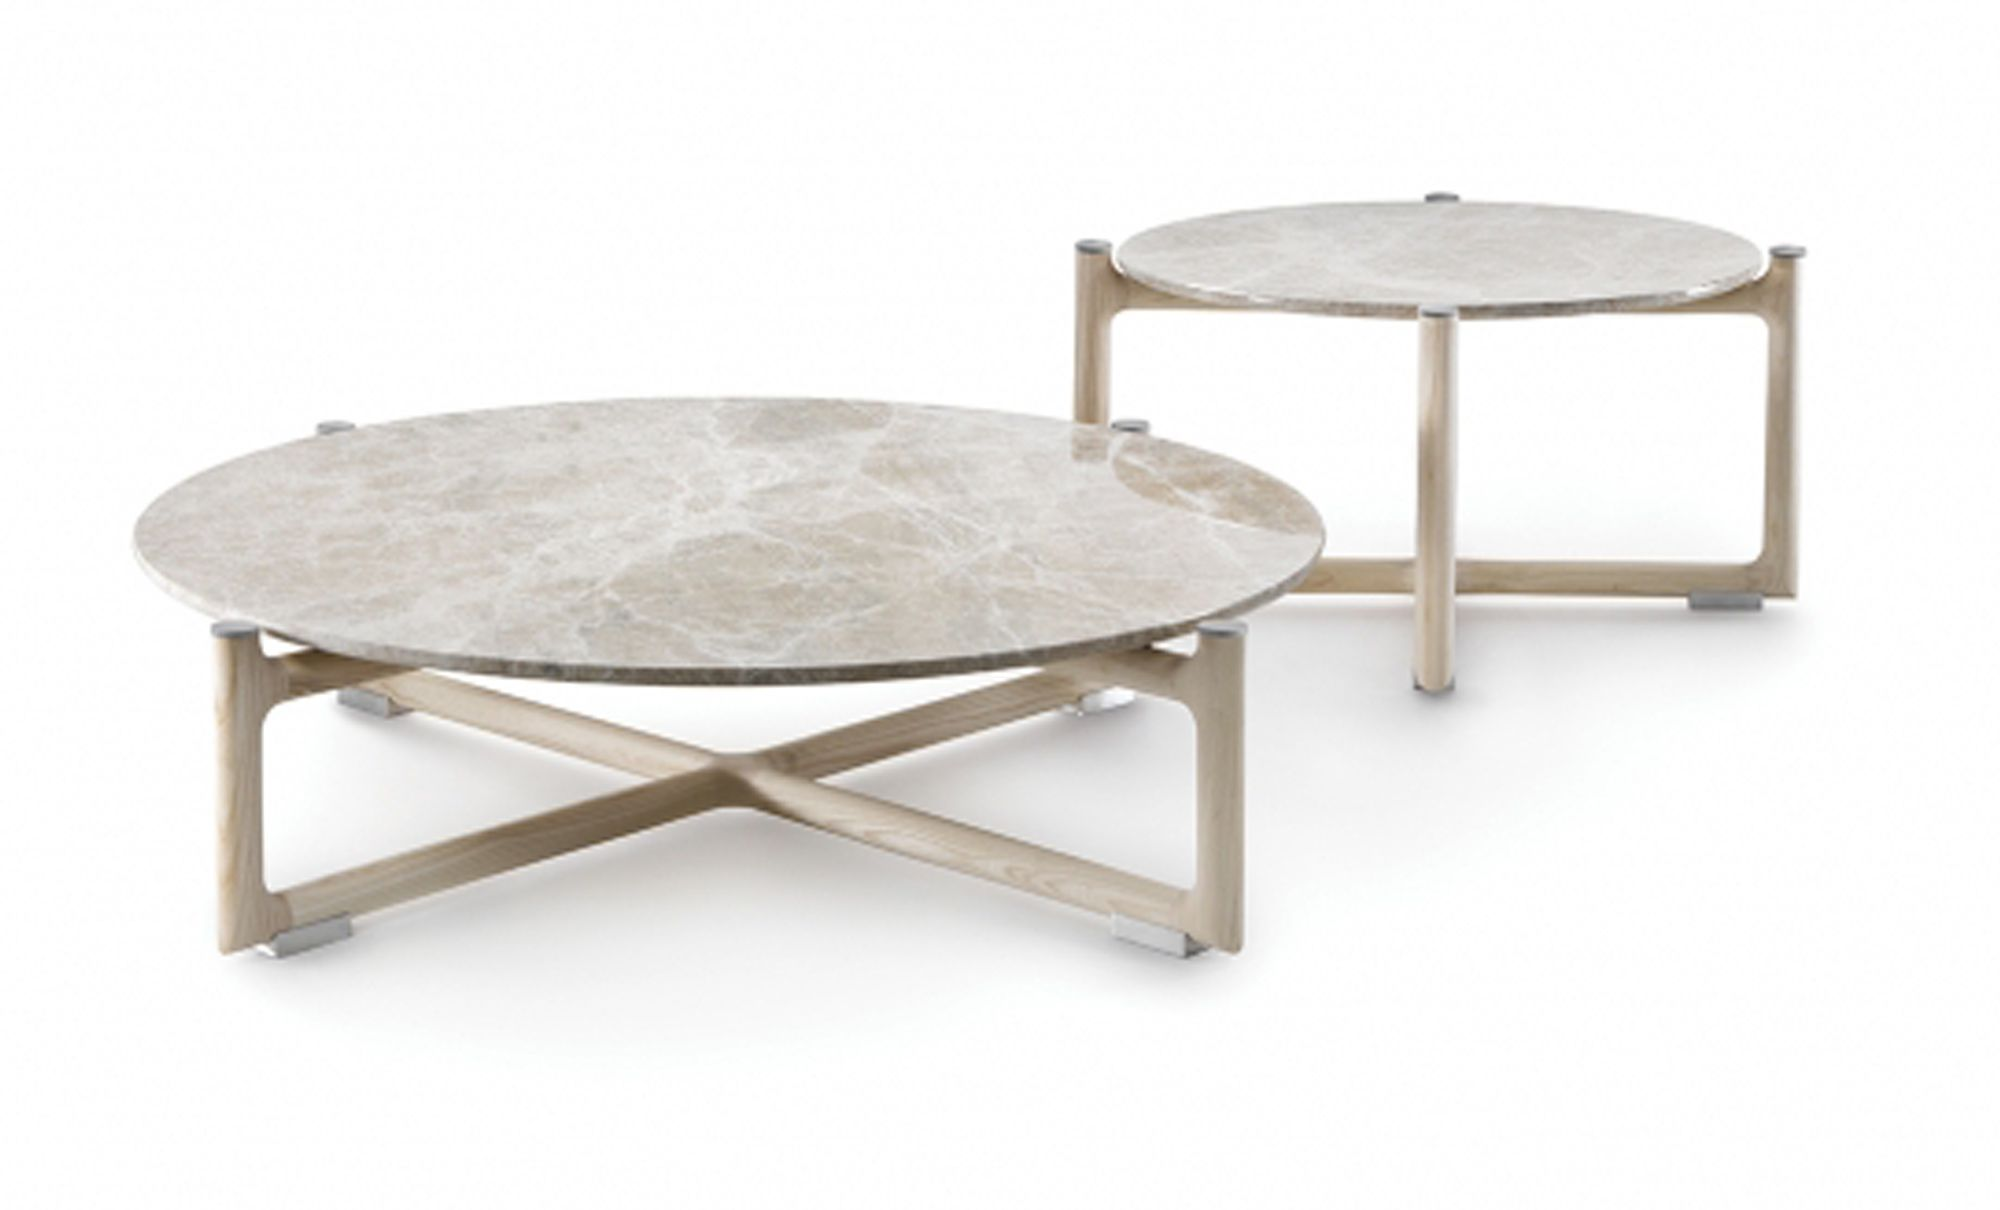 the icaro coffee table collection has a sturdy structure in solid